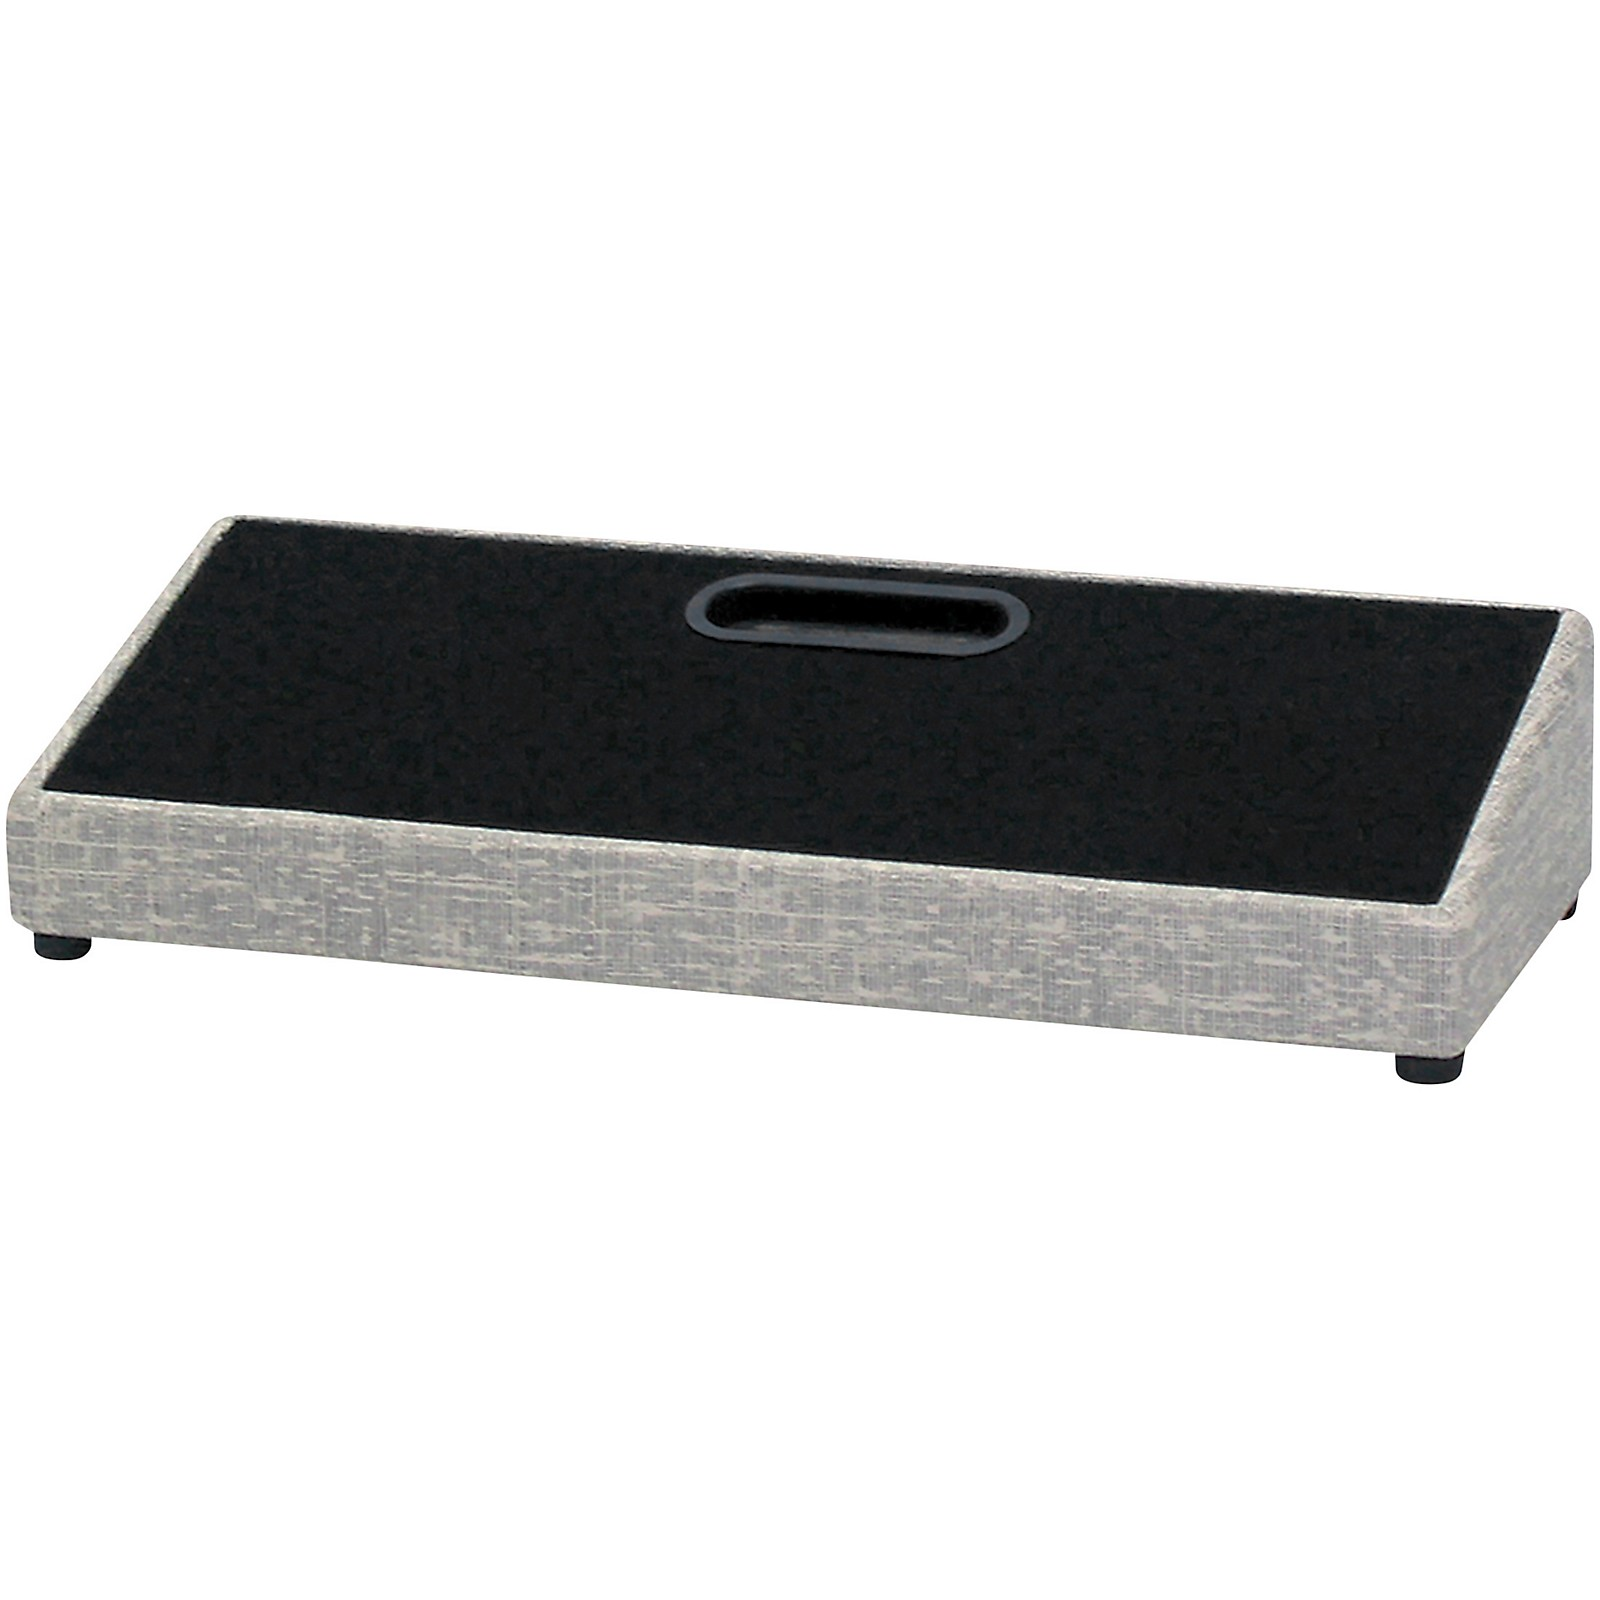 Blackbird Pedalboards Feather Pedalboard and Gig Bag Fawn Tolex